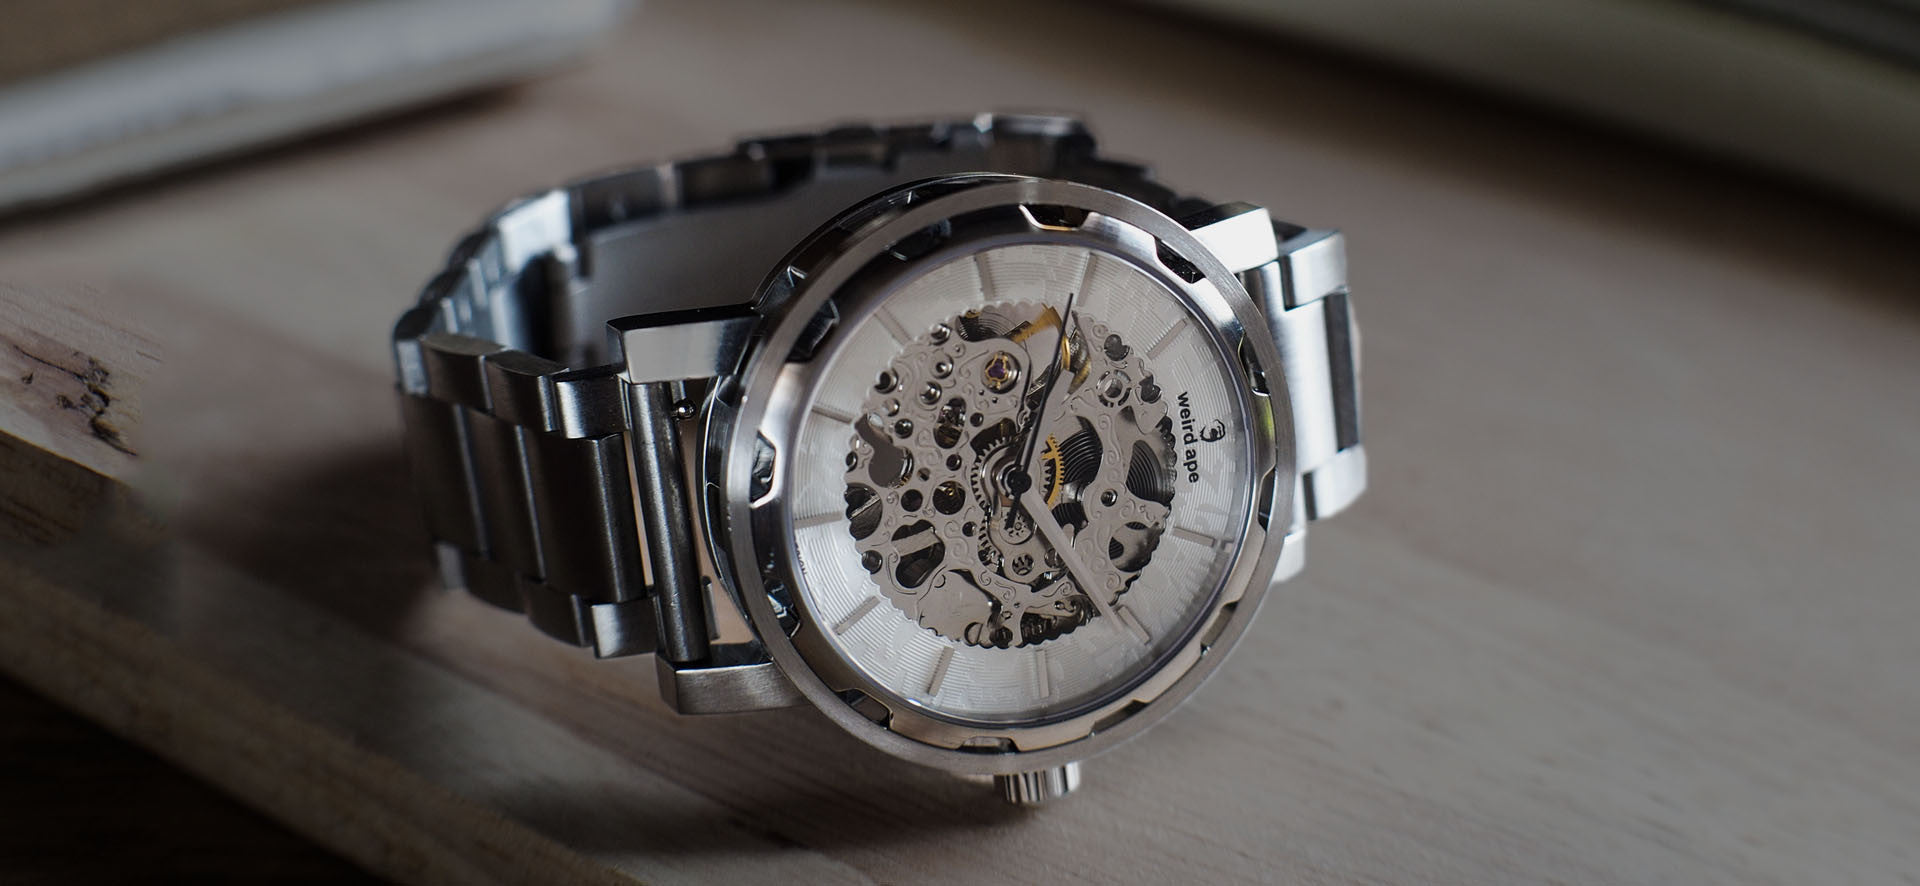 Silver skeleton watch with a silver strap in a lifestyle image